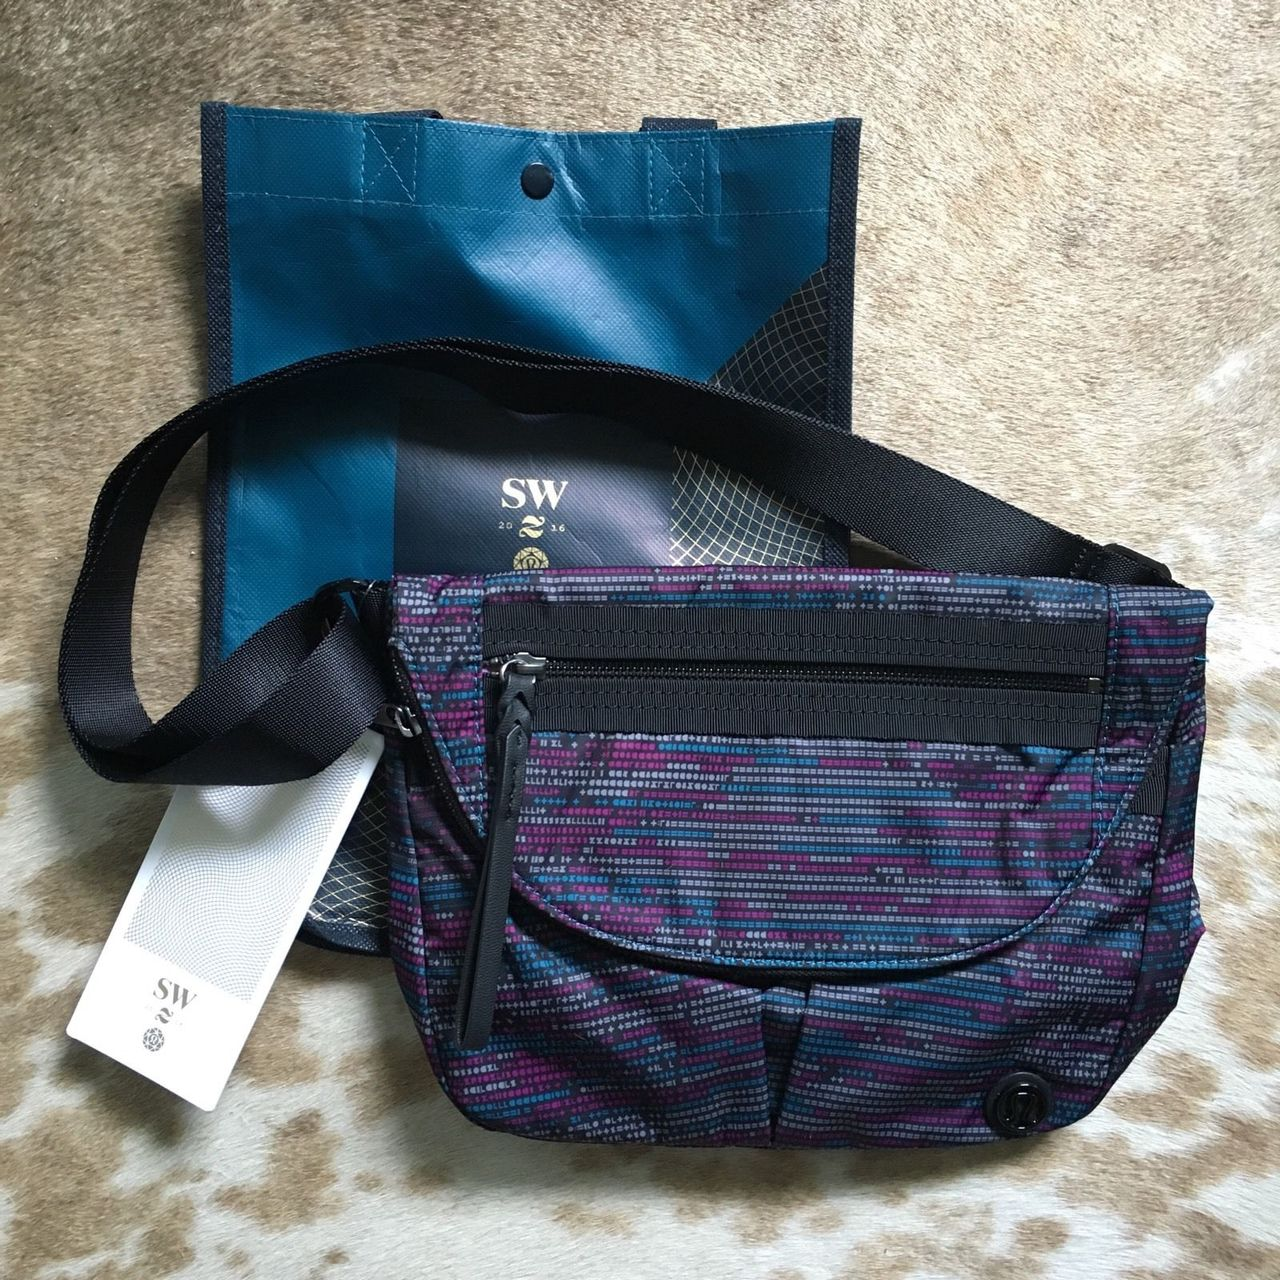 Lululemon Festival Bag Ii 2017 Seawheeze Ascii Regal Plum Tofino Teal